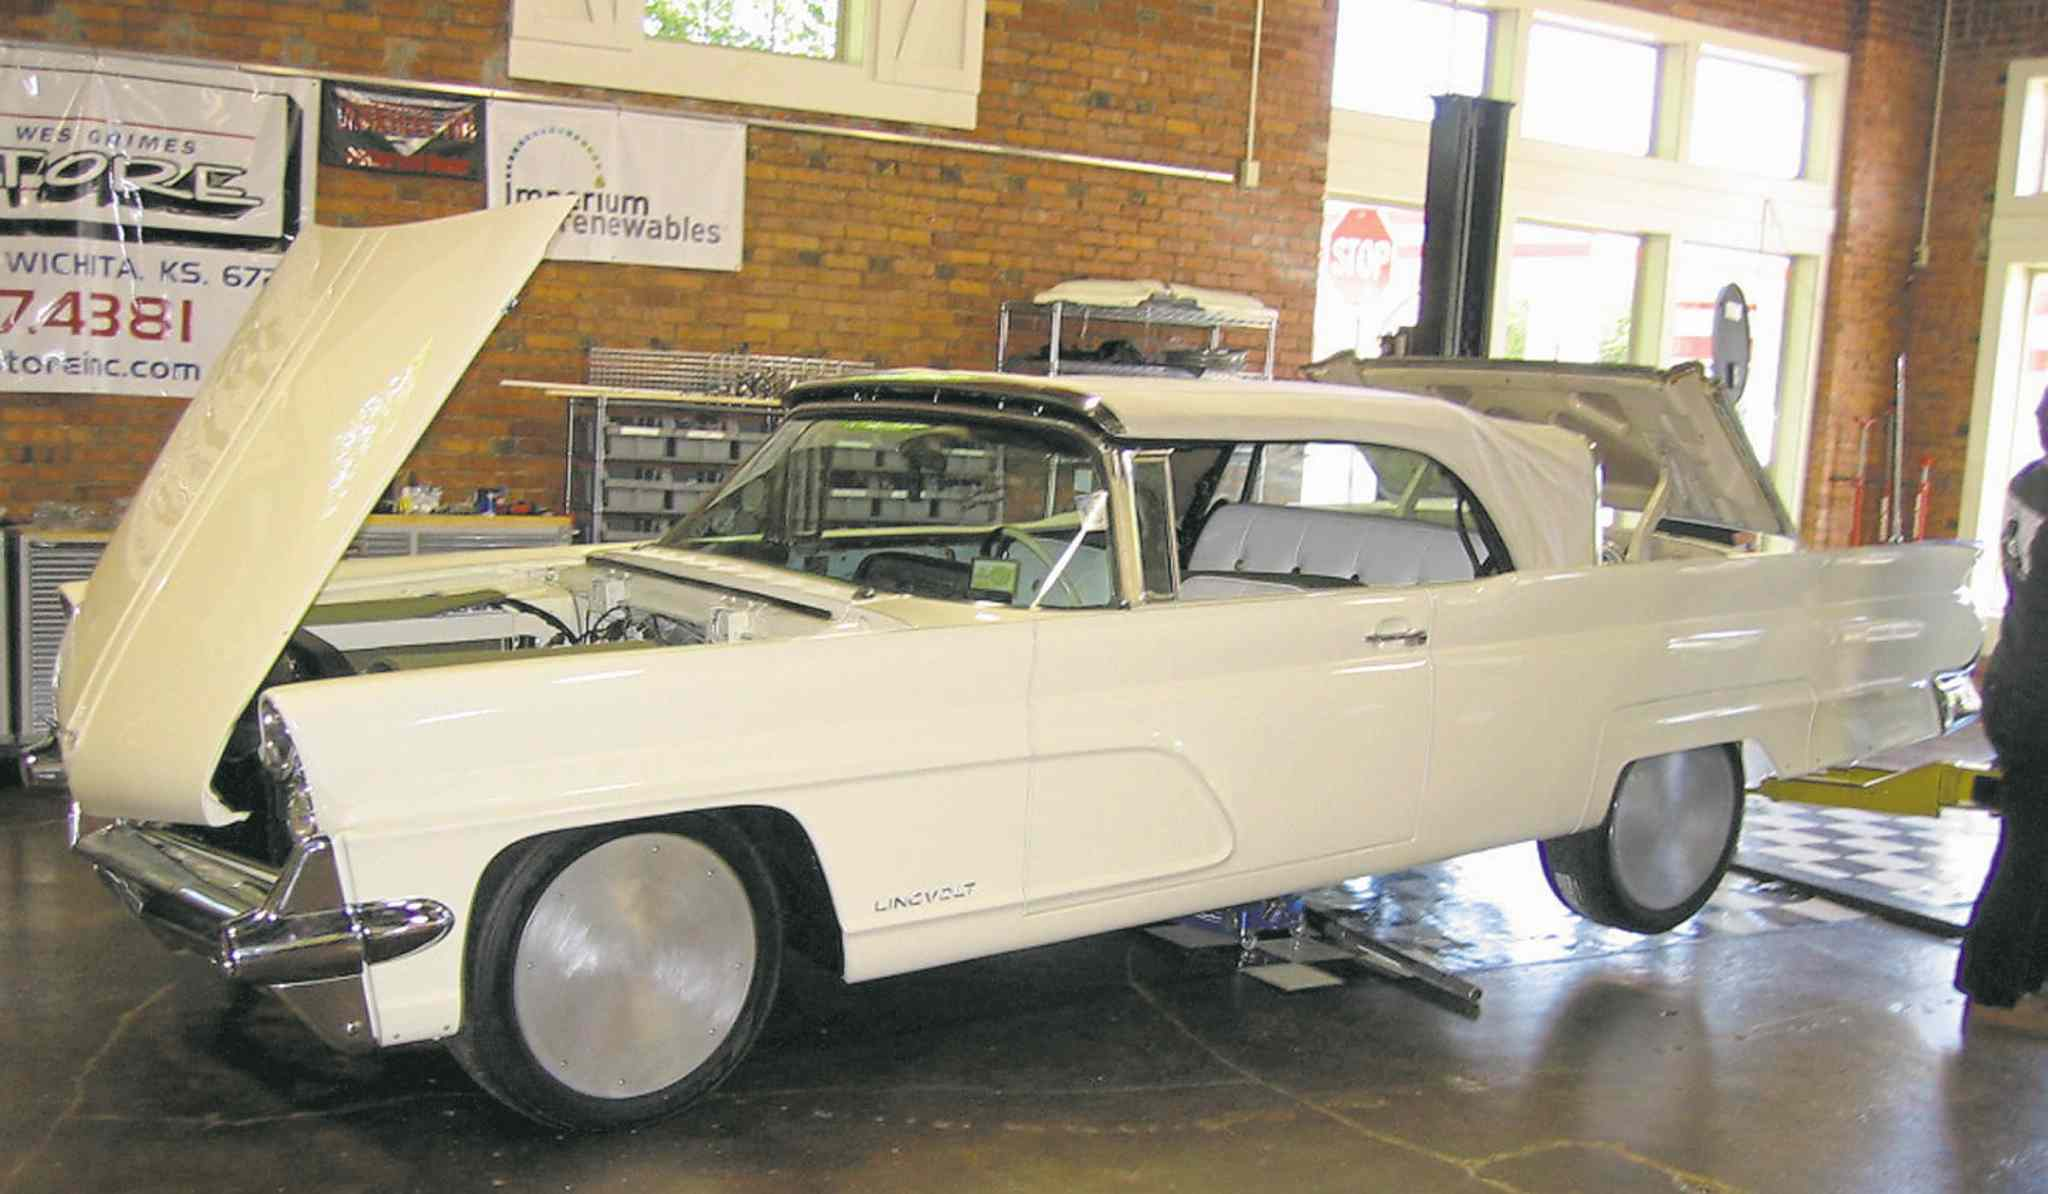 Young devotes many pages to his Lincvolt, a '59 Lincoln Continental he converted into an electric vehicle.